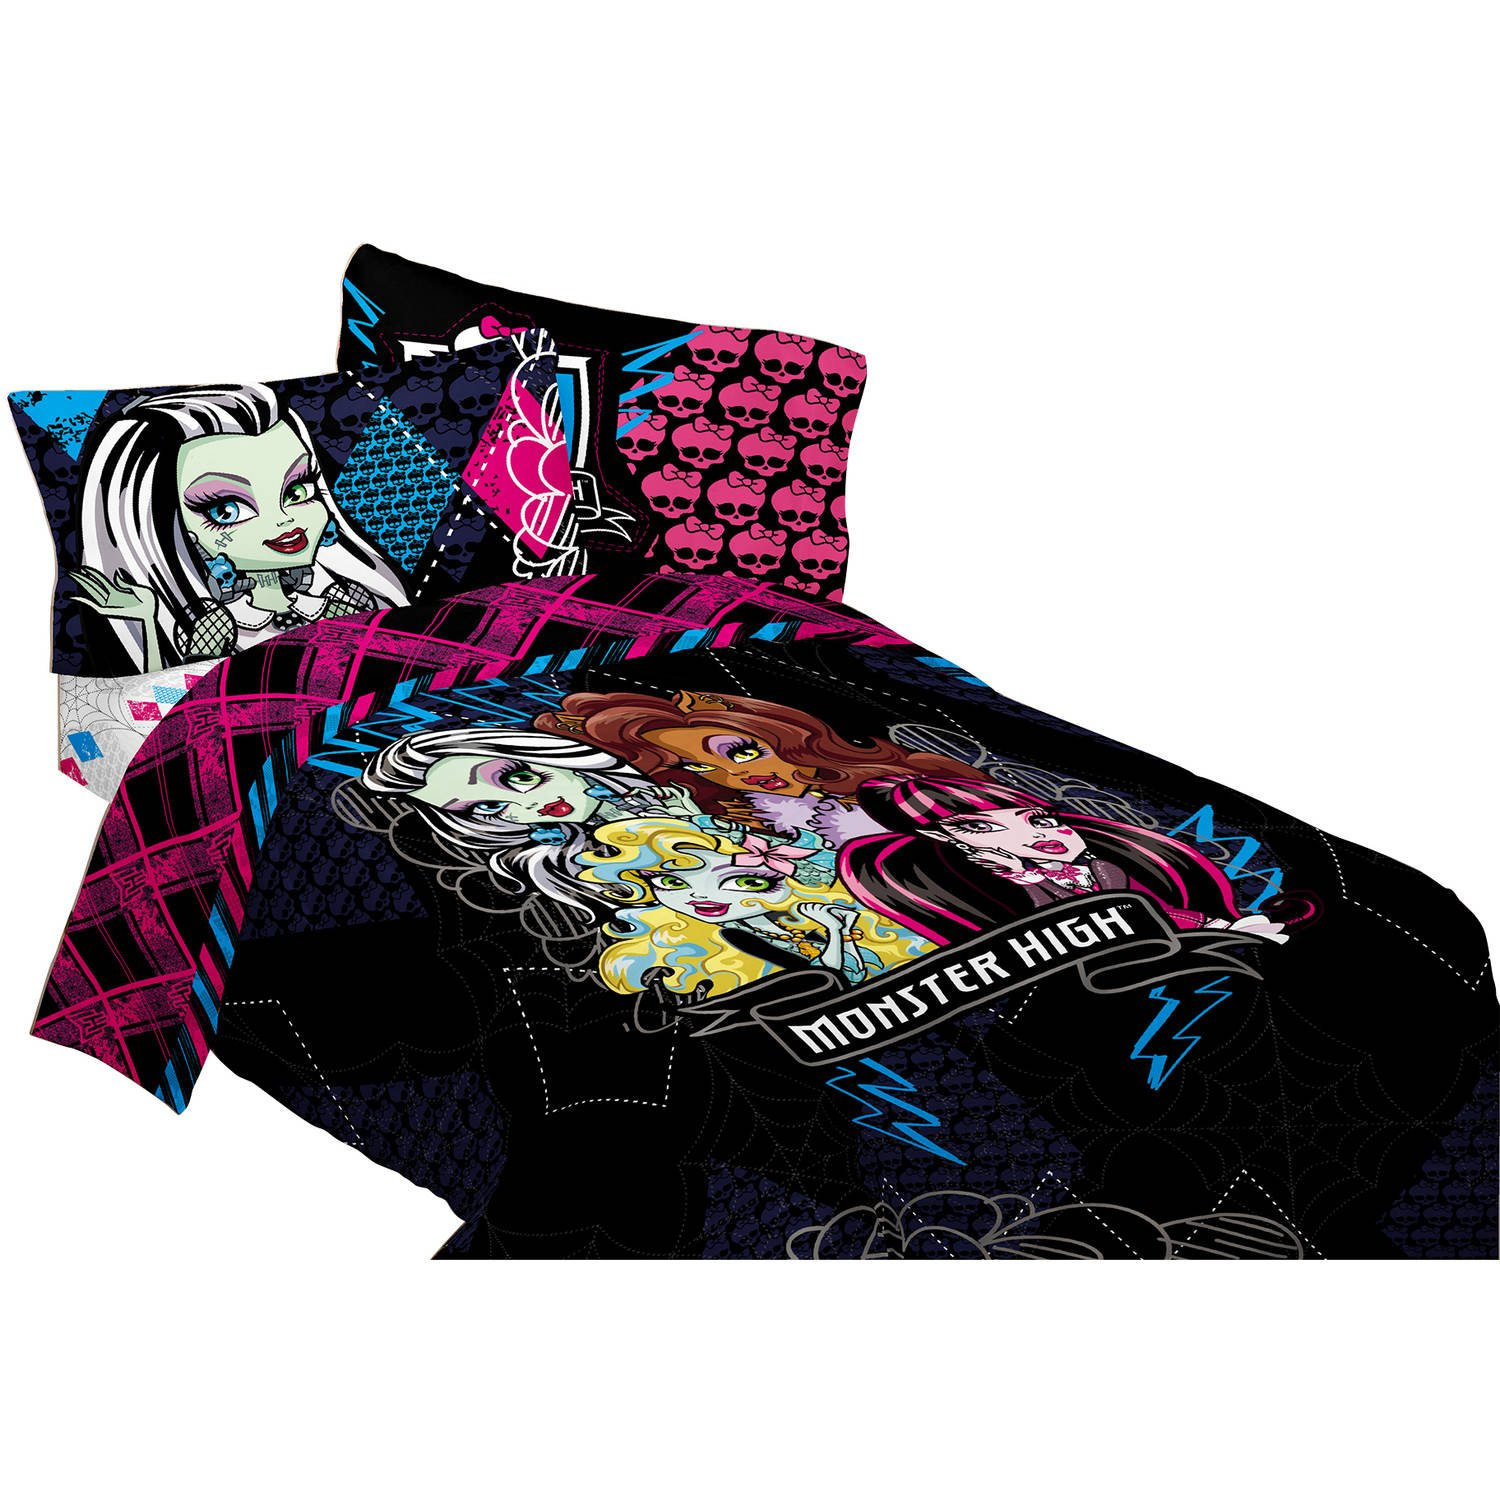 Childrens, Kids, Toddlers, Twin Size Bedding Comforter Sets (Monsters High) by Disney Nickelodeon Marvel